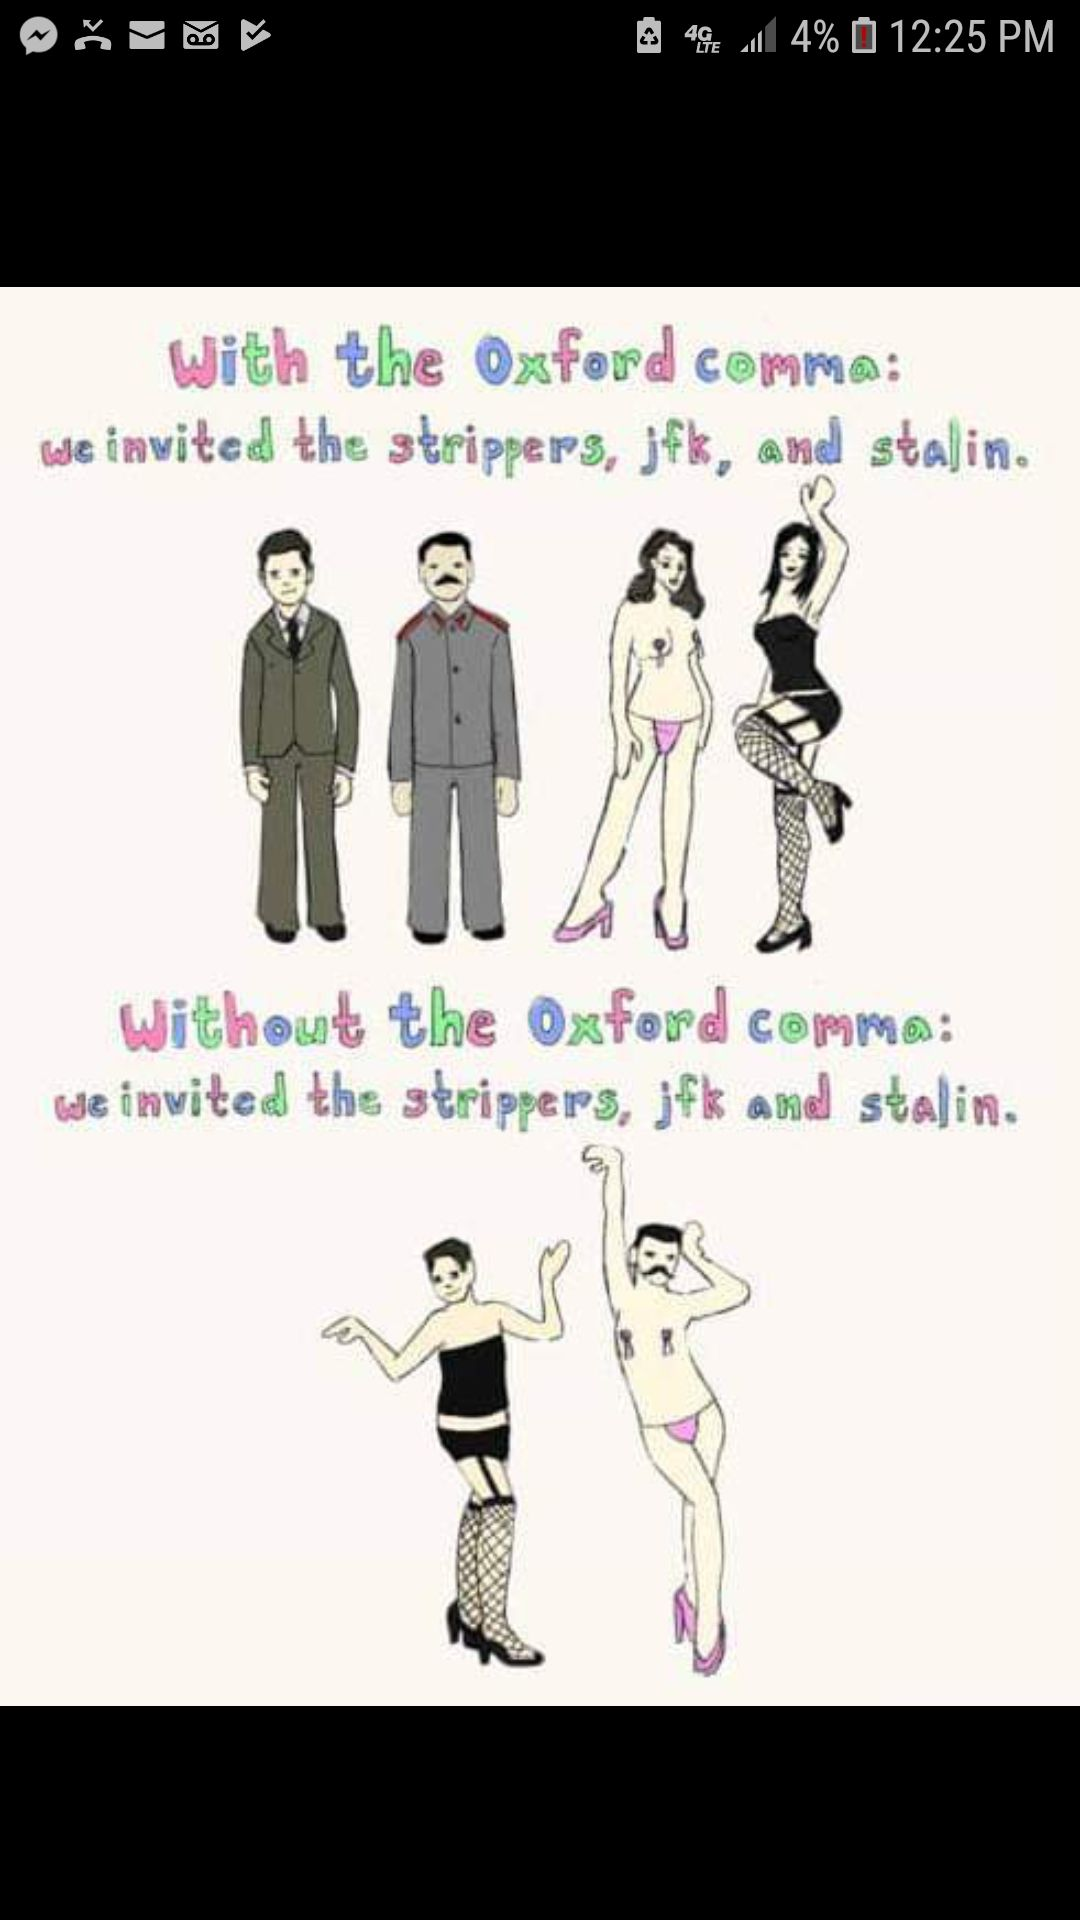 Best argument I've seen for the Oxford comma